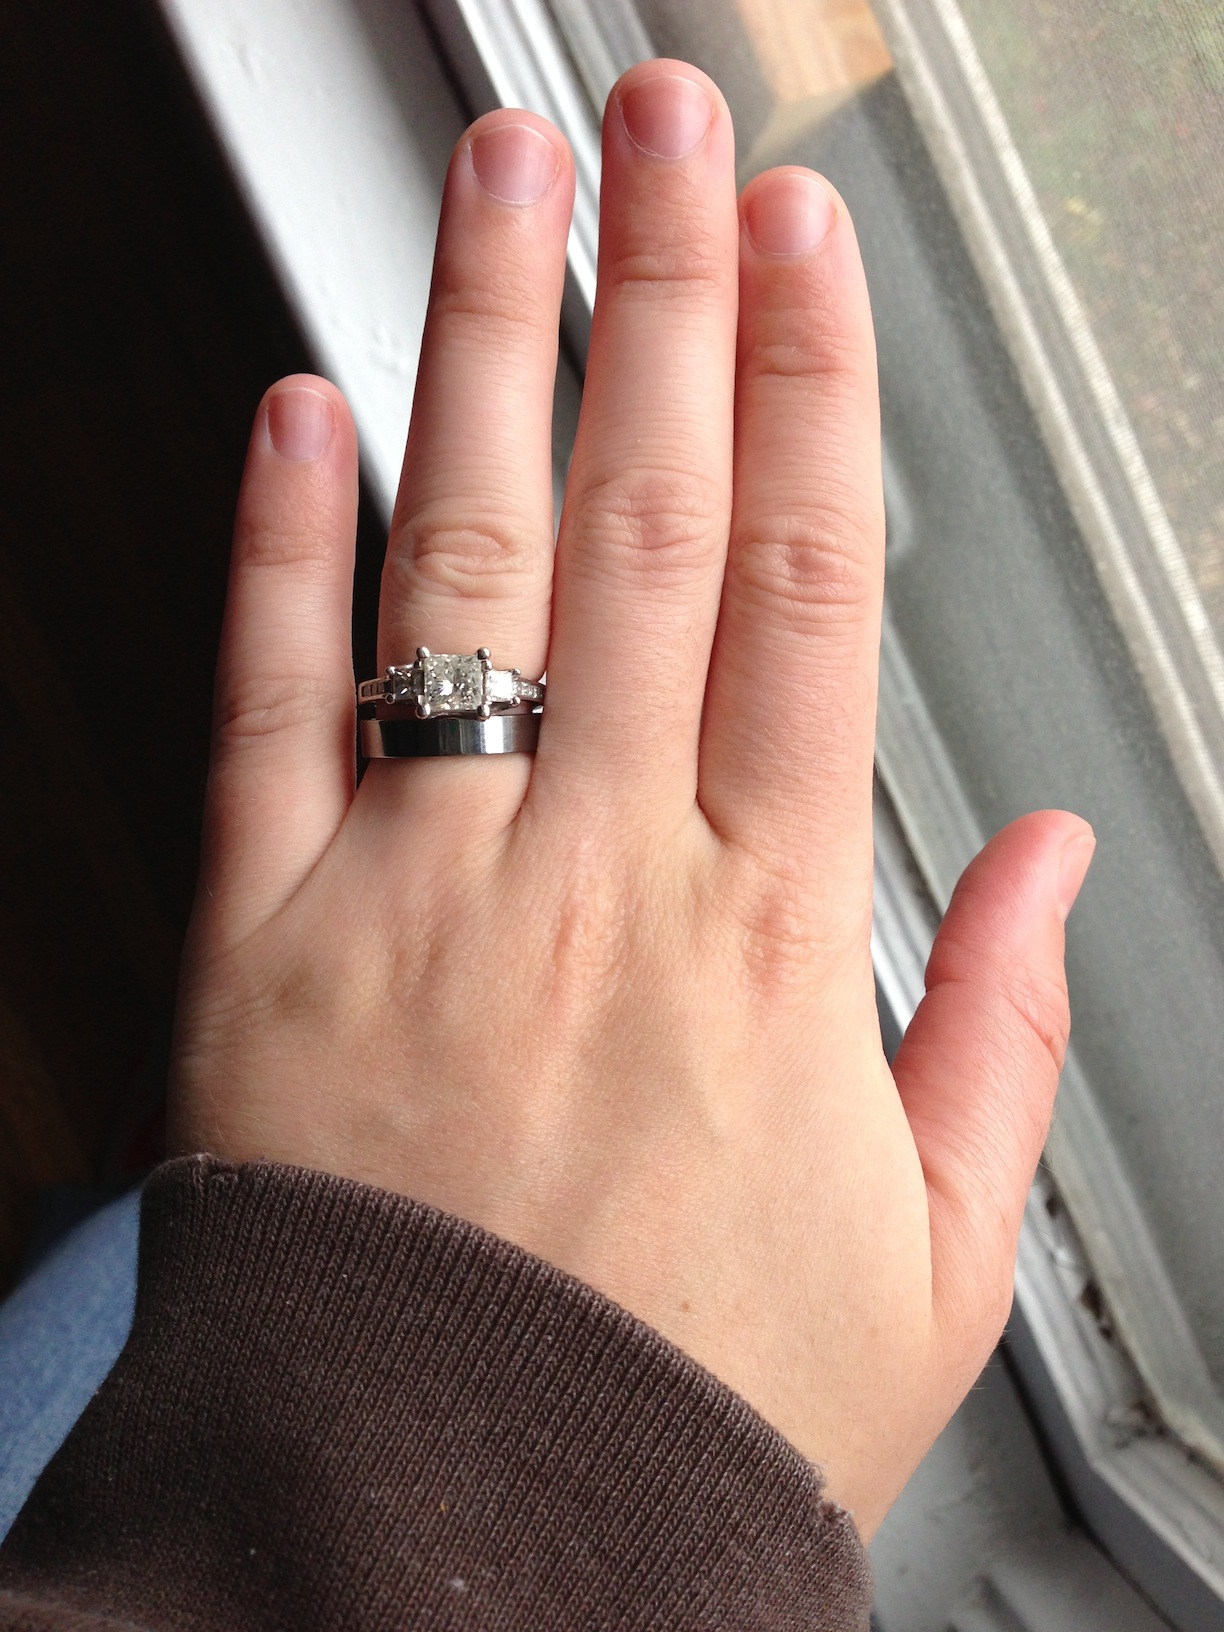 engagement ring and wedding bands tungsten wedding rings engagement ring and wedding bands